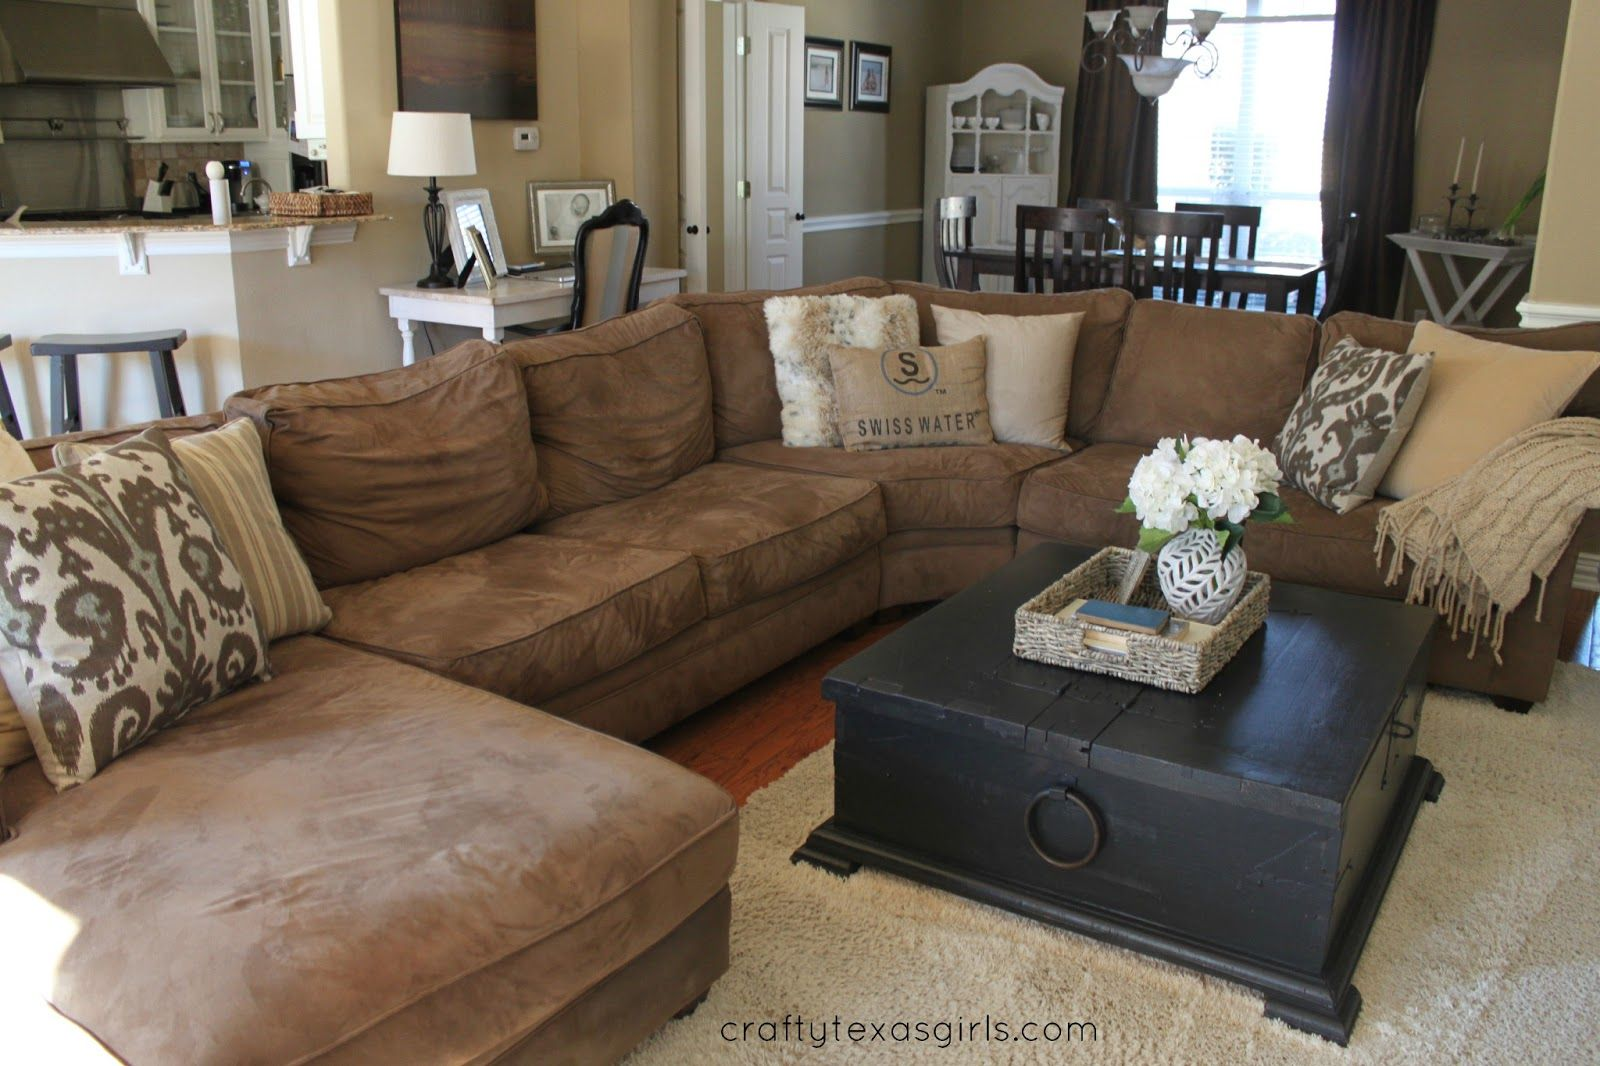 captivating country living rooms brown couches | Pin by Tina McCrorey on Country decor in 2019 | Living ...